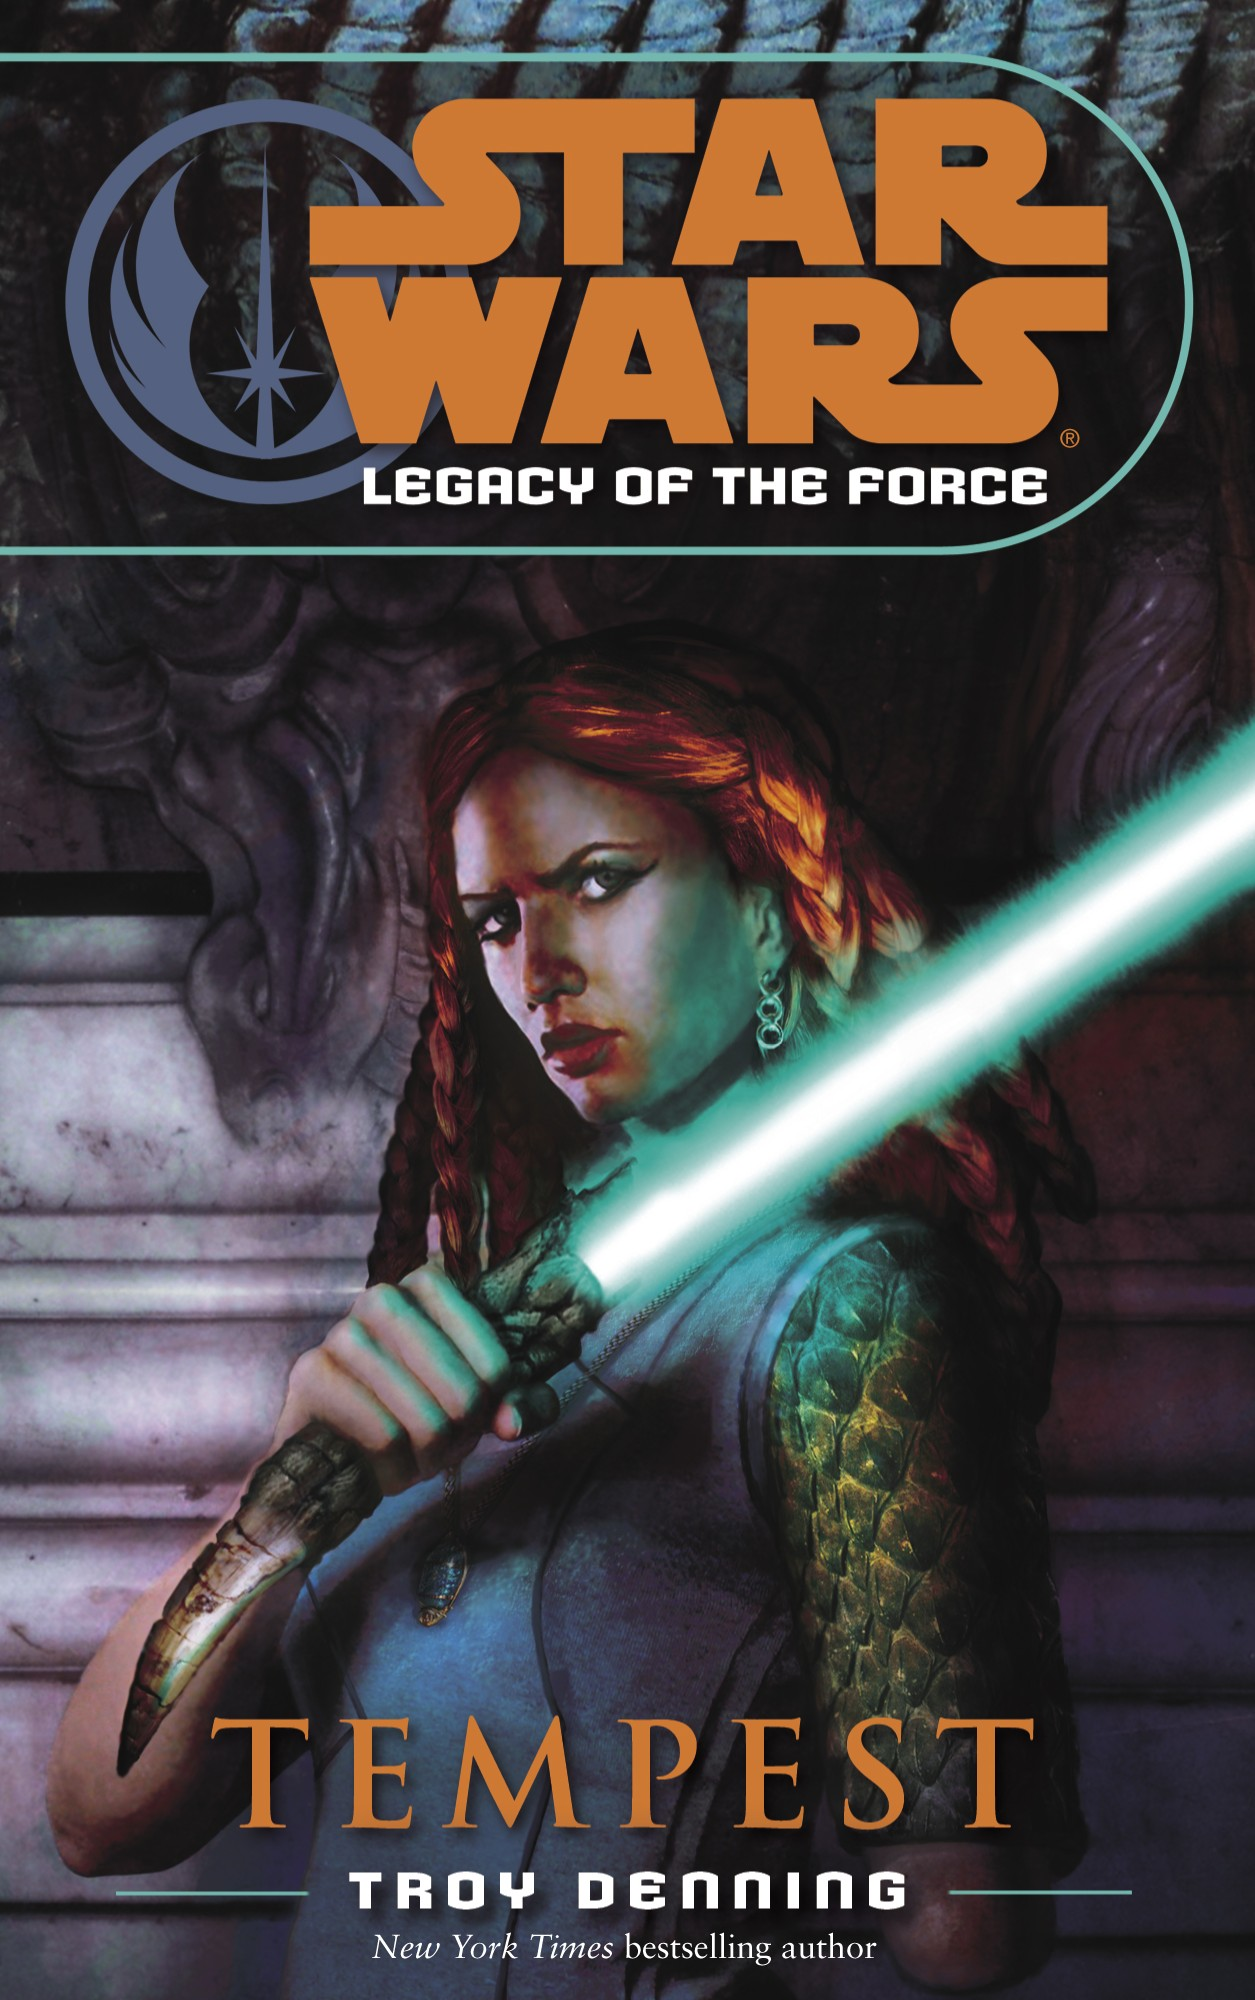 Star Wars Legacy of the Force: Tempest